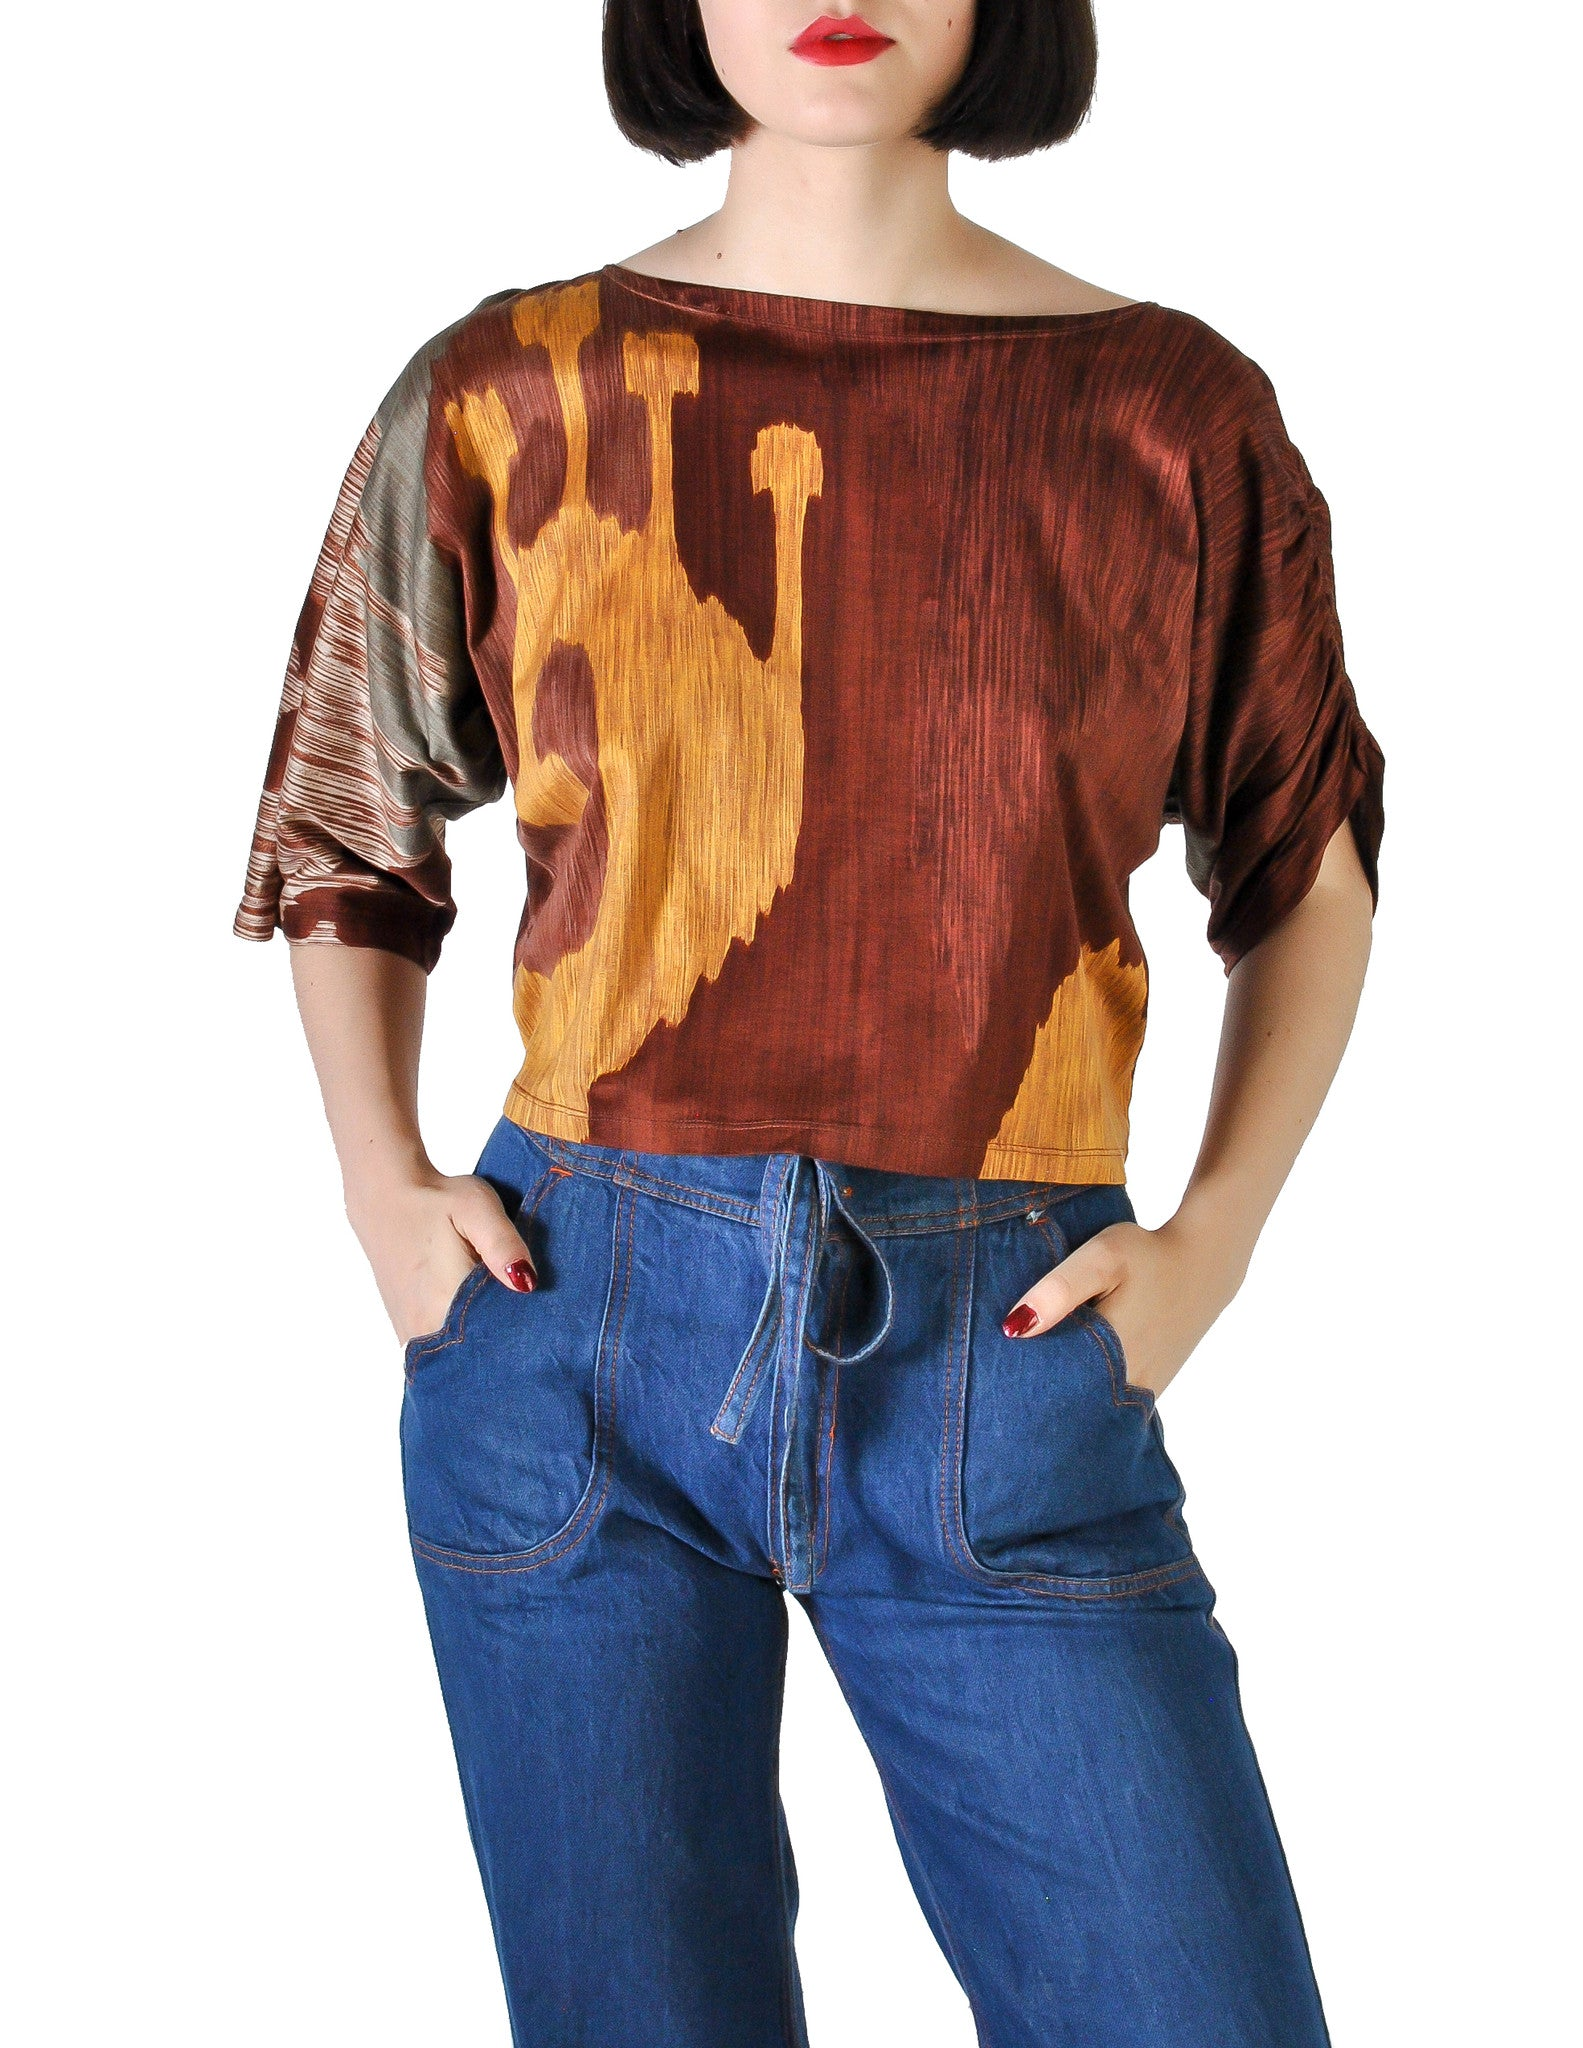 Spazio Vintage Brown Graphic Patterned Cropped Top - Amarcord Vintage Fashion  - 1